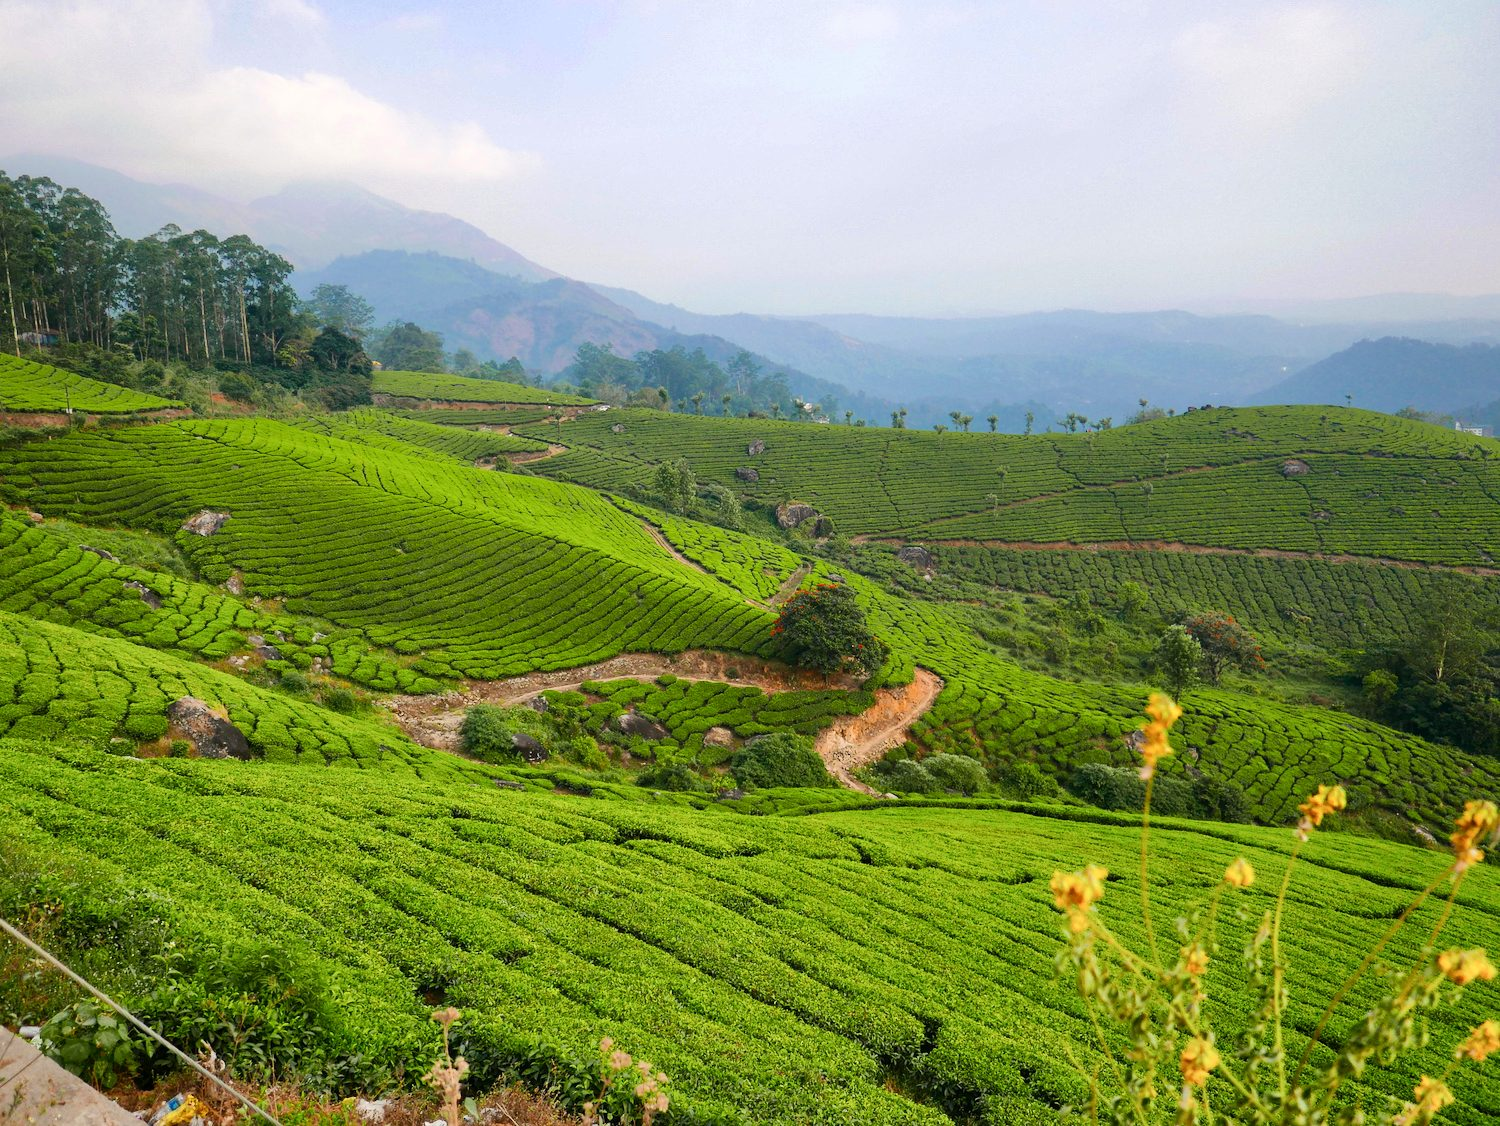 Munnar Tea estate views